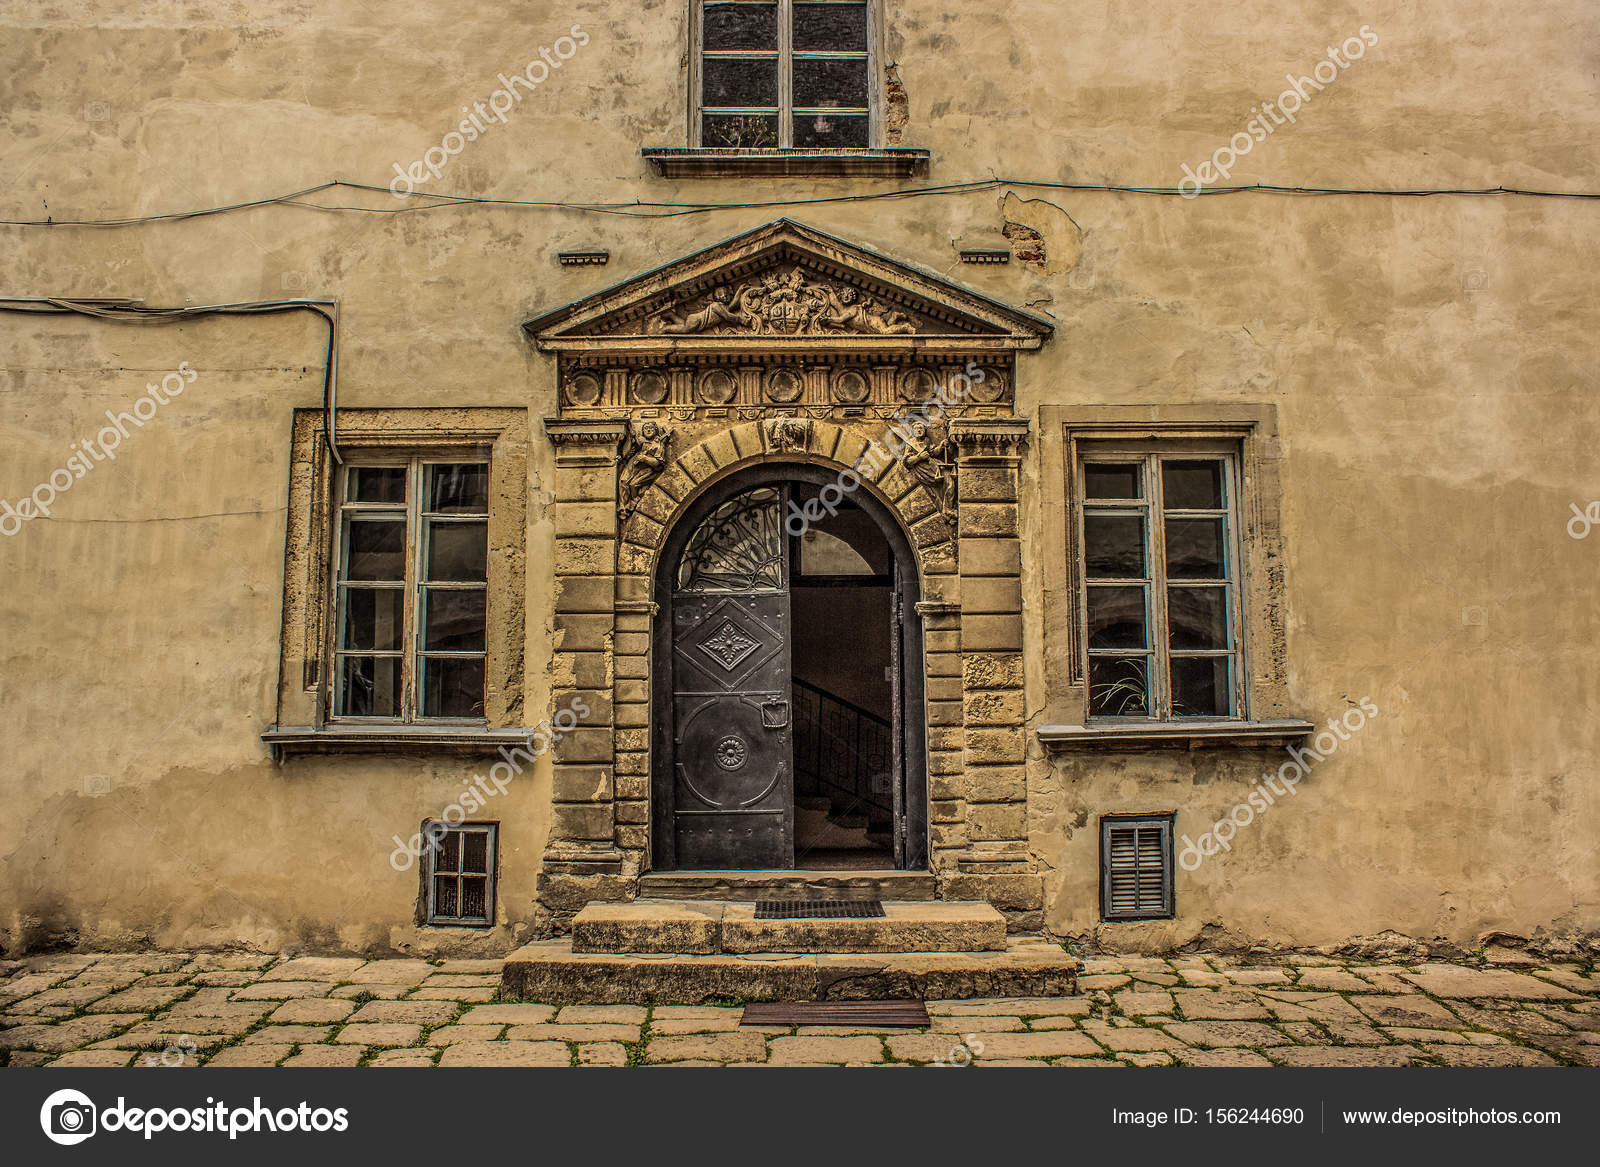 Old castle facade with doors and windows for background u2014 Stock Photo & old castle facade with doors and windows for background u2014 Stock ...